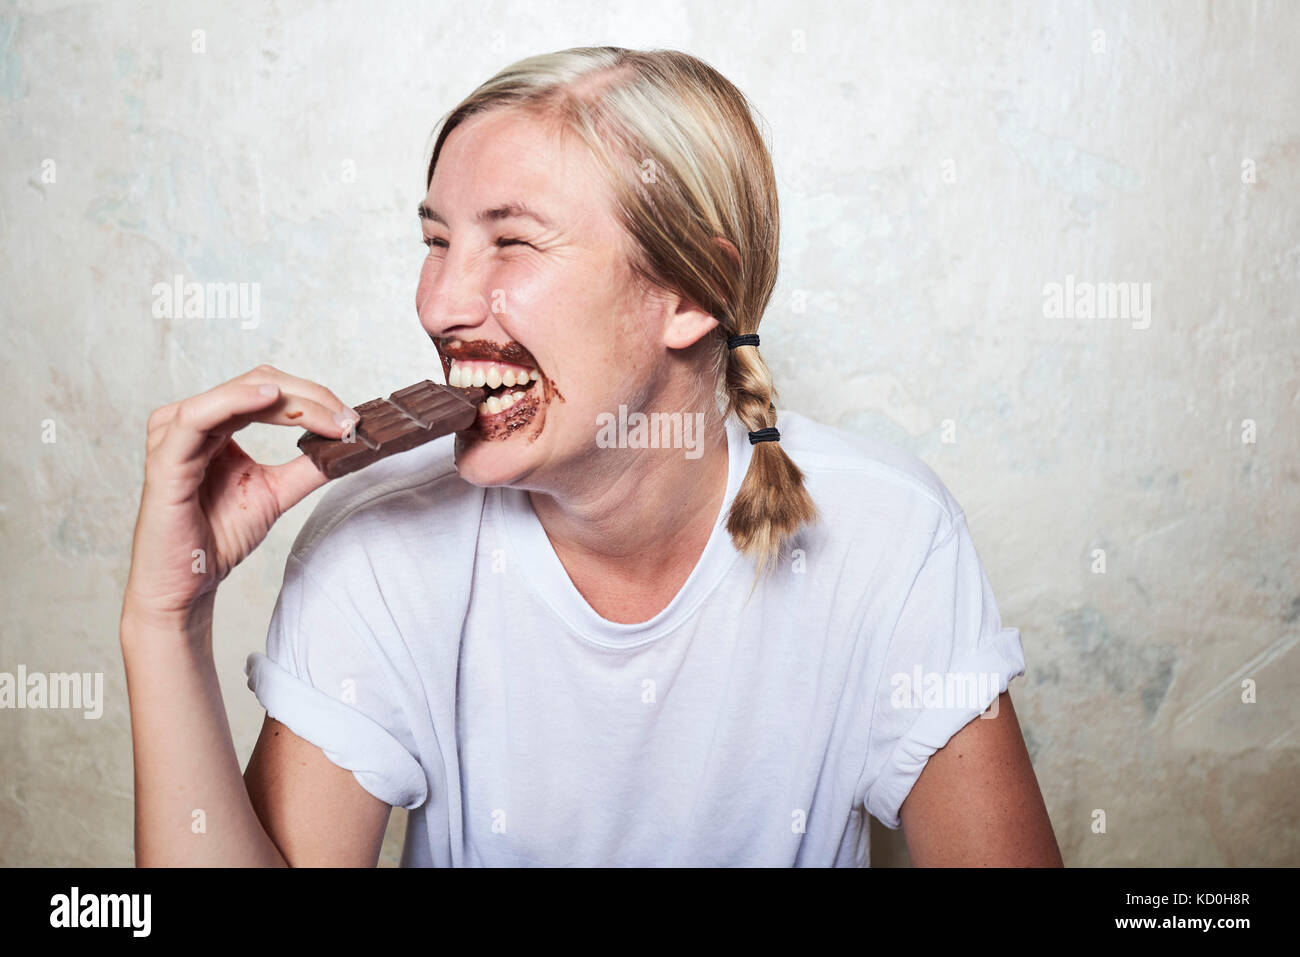 Woman eating bar of chocolate, chocolate around mouth, laughing - Stock Image